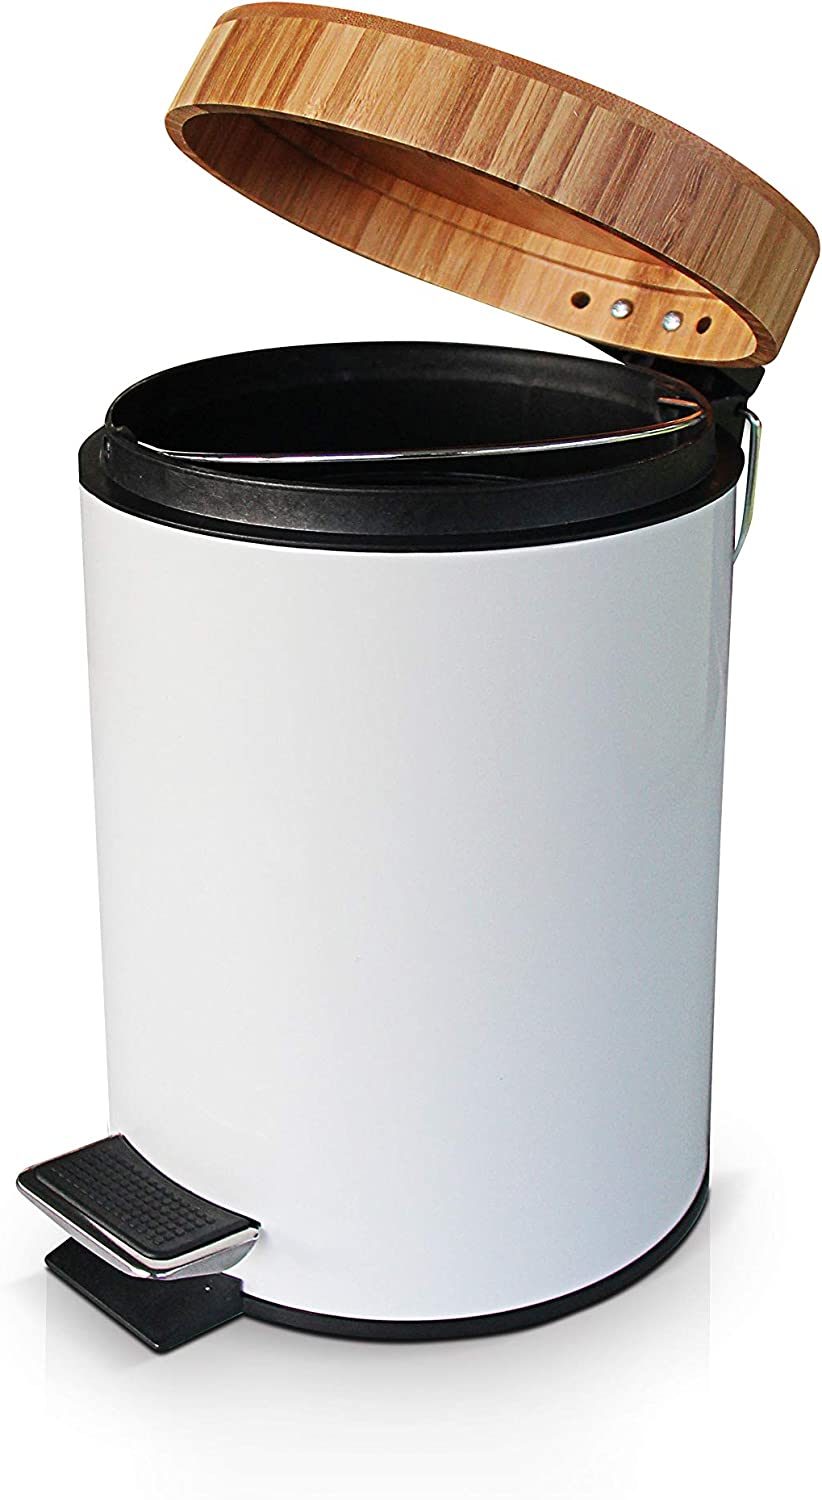 VORZAVARRI 3 Litre/0.8 Gallon Small Compact Round Metal Trash Can, Garbage Bin with Soft Closing Bamboo Lid, Removable Inner Wastebasket, Foot Pedal – for Bathroom, Kitchen, Home Office.